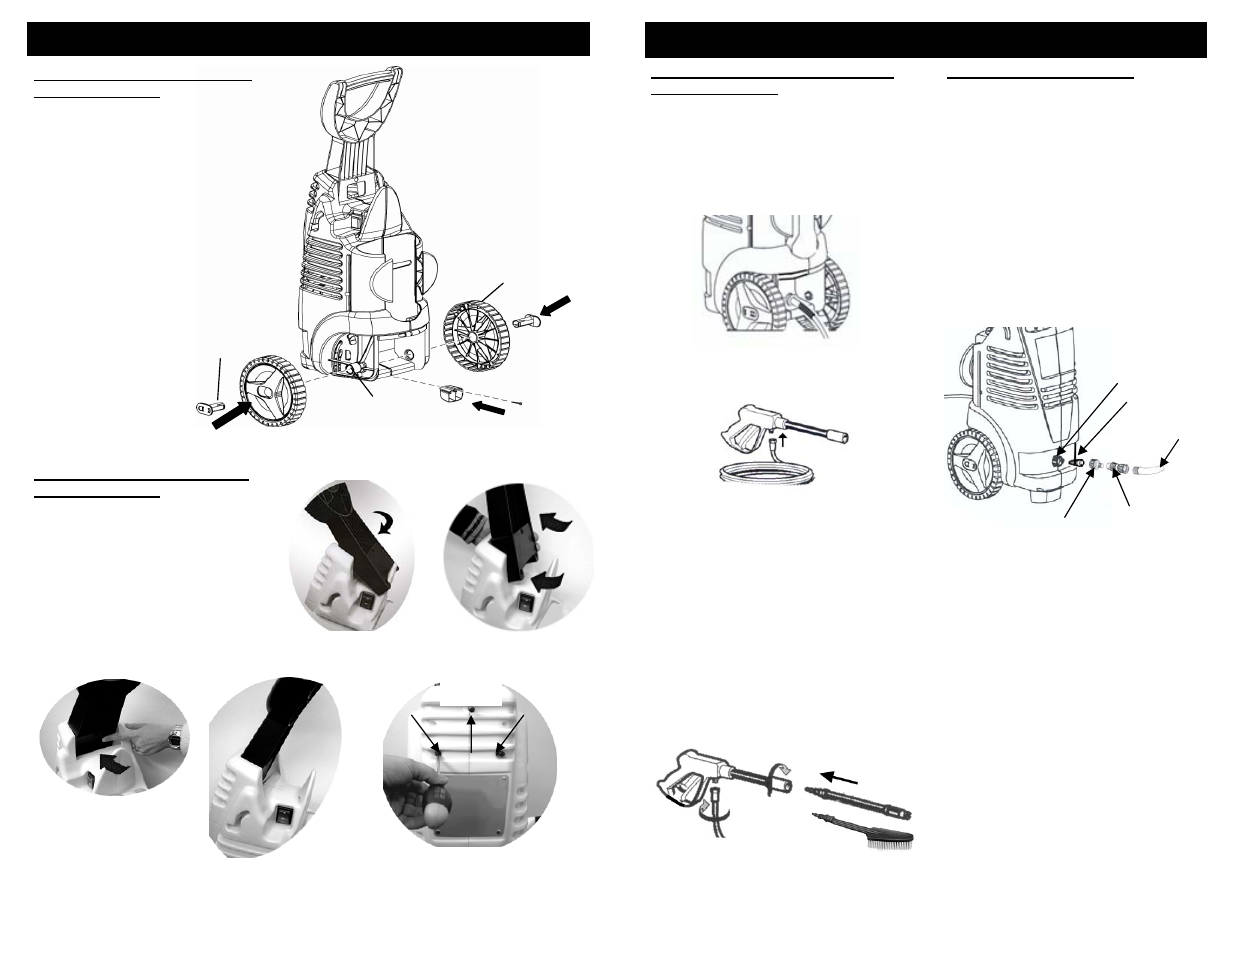 Dewalt pressure washer manual the pressure washer dewalt 3800.